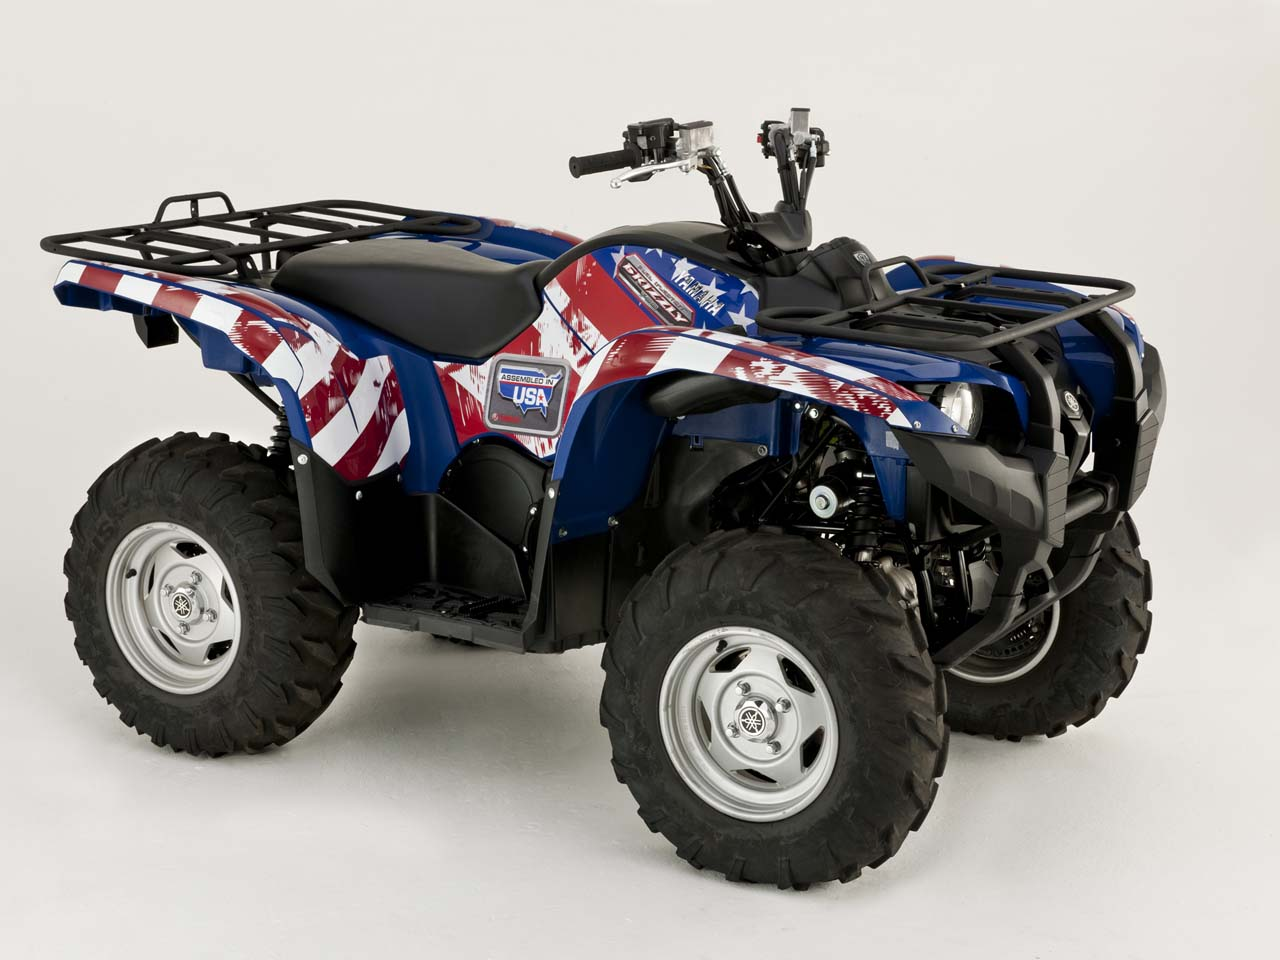 yamaha launches assembled in usa grizzly 700 eps atv. Black Bedroom Furniture Sets. Home Design Ideas